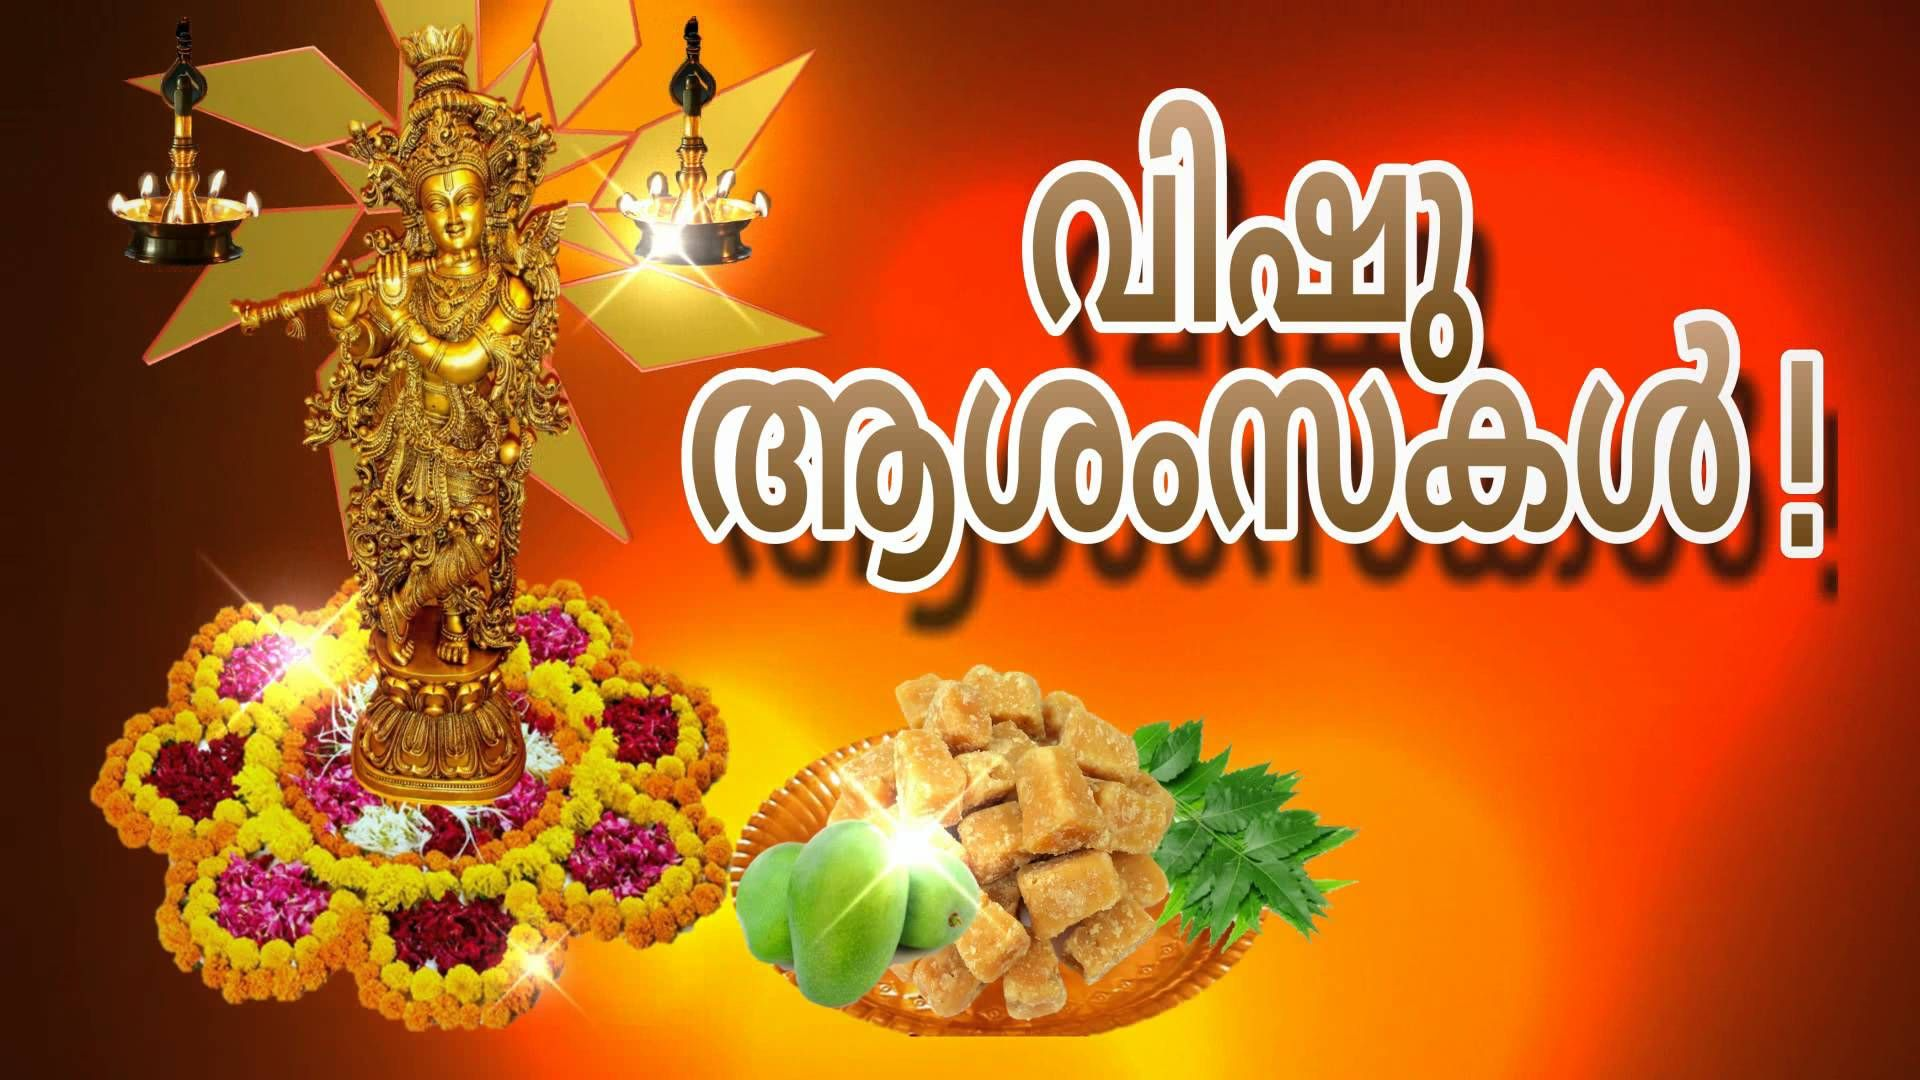 Happy Vishu 2016, Vishu Greetings, Vishu Wishes, Happy